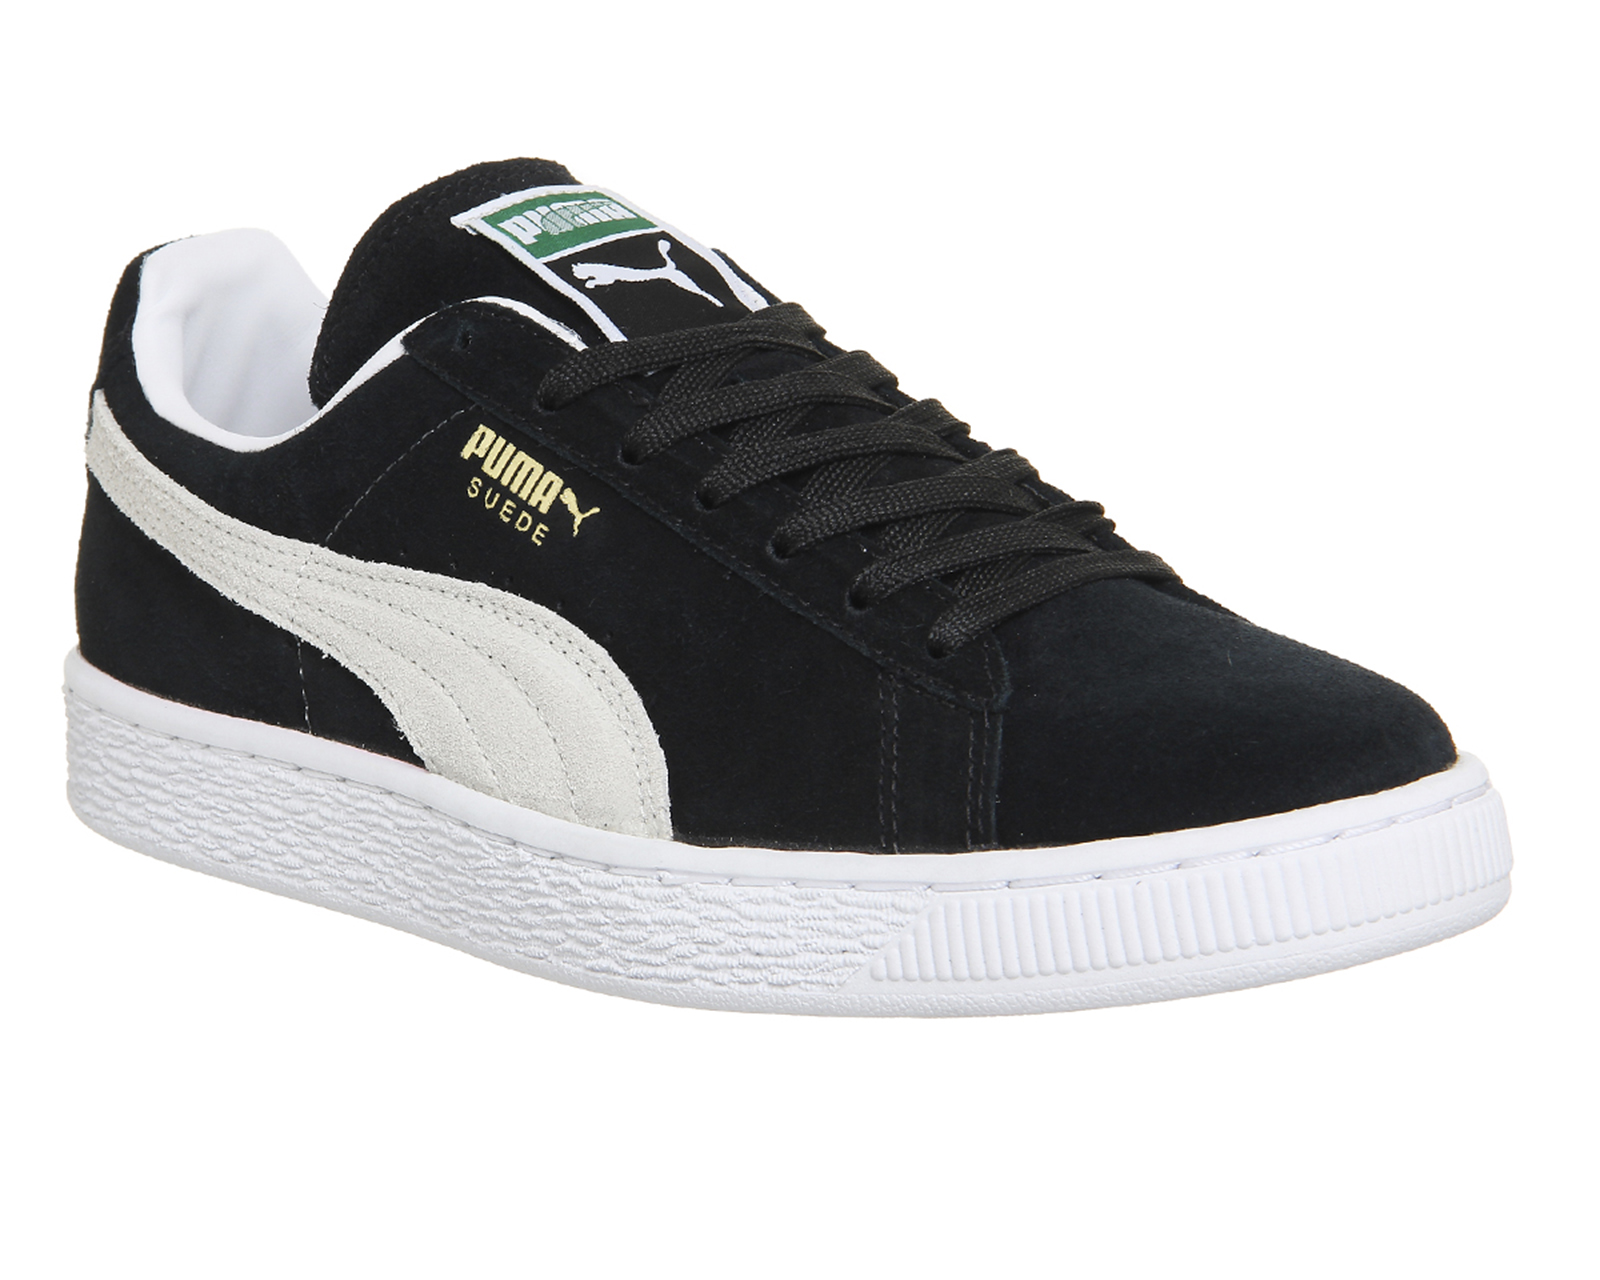 Mens-Puma-Suede-Classic-BLACK-WHITE-Trainers-Shoes